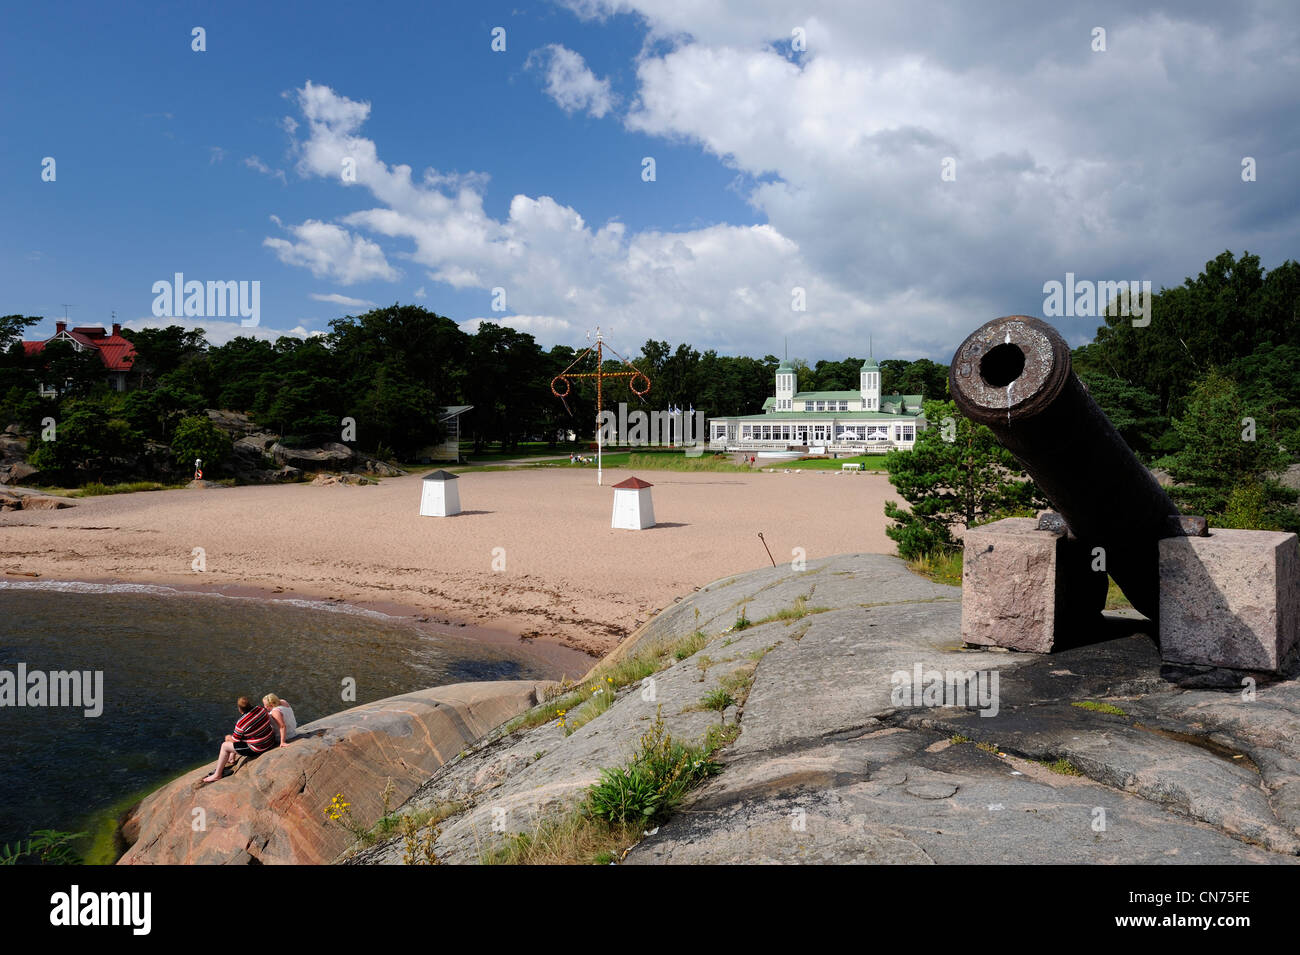 Casino's beach of Hanko town is an idyllic and quiet beach with plenty of room to have a picnic and go swimming. - Stock Image